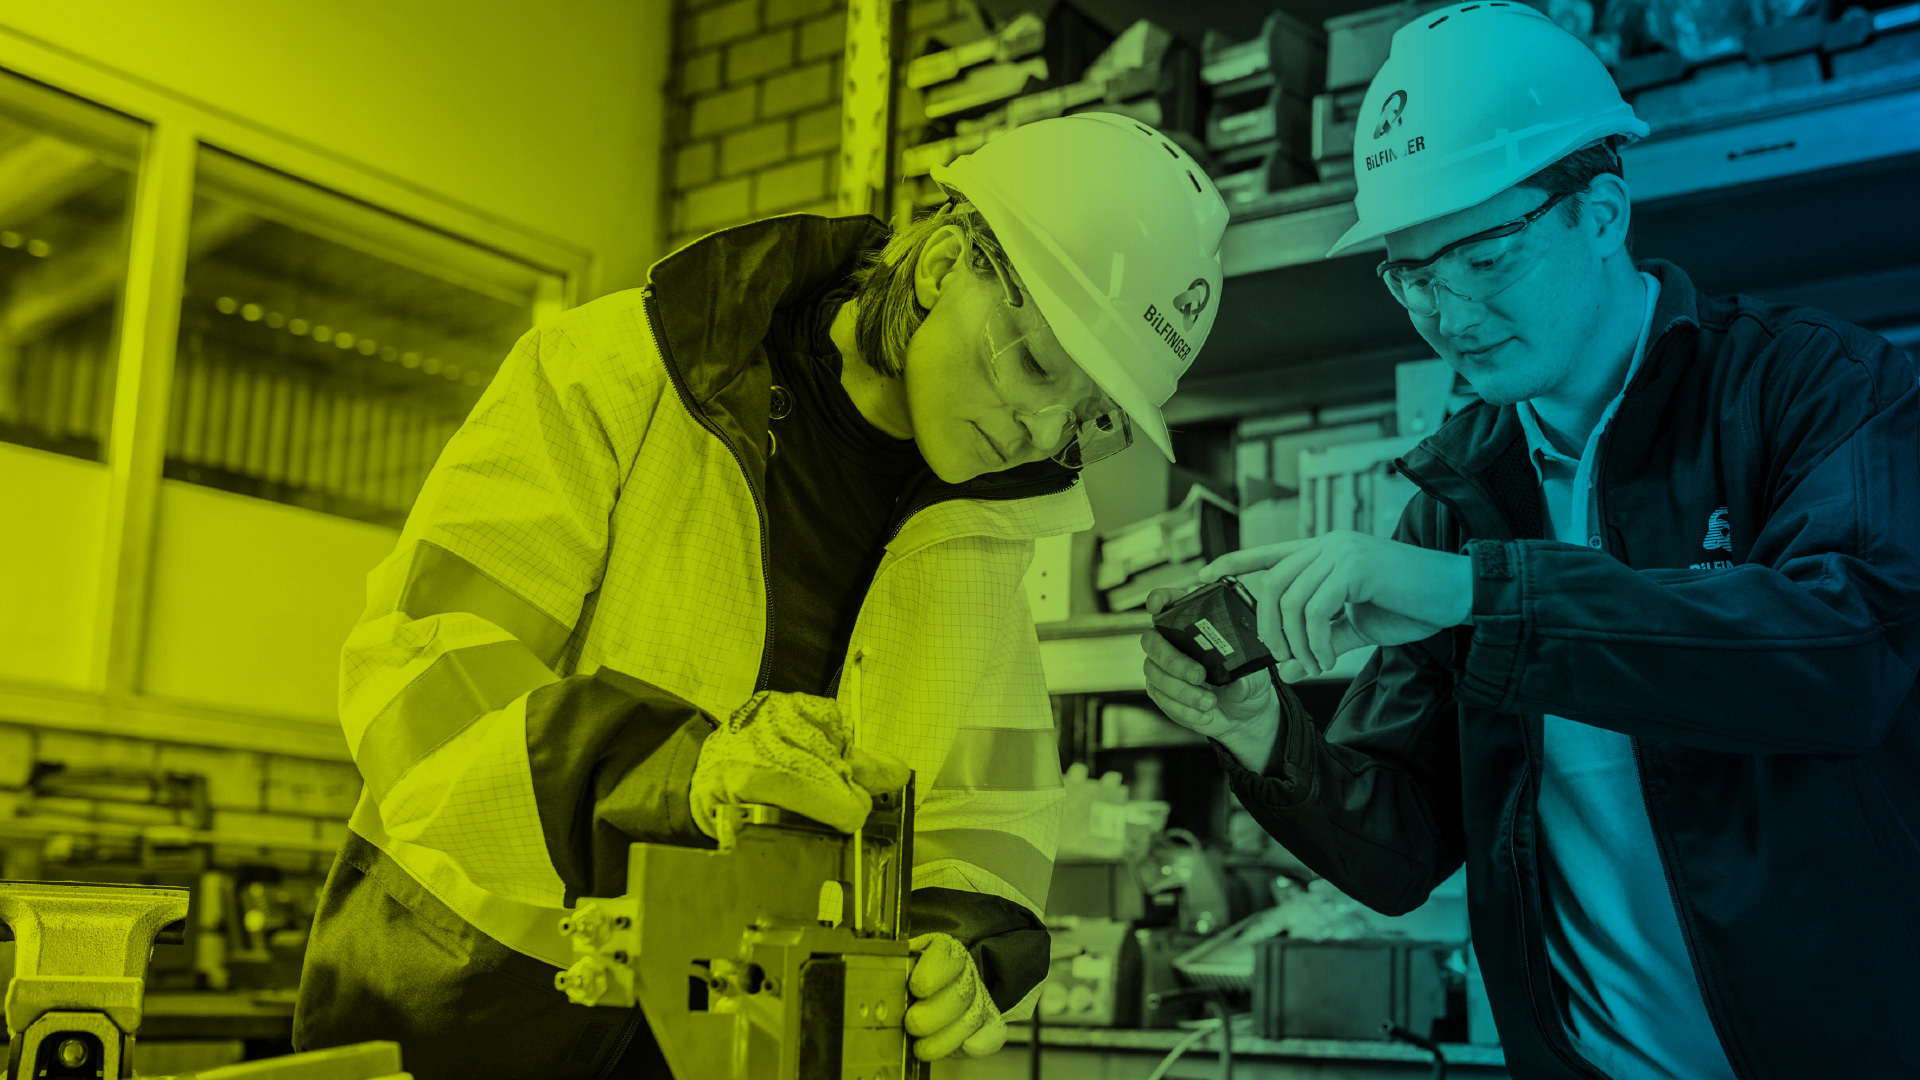 Bilfinger Industrial Services Provider For The Process